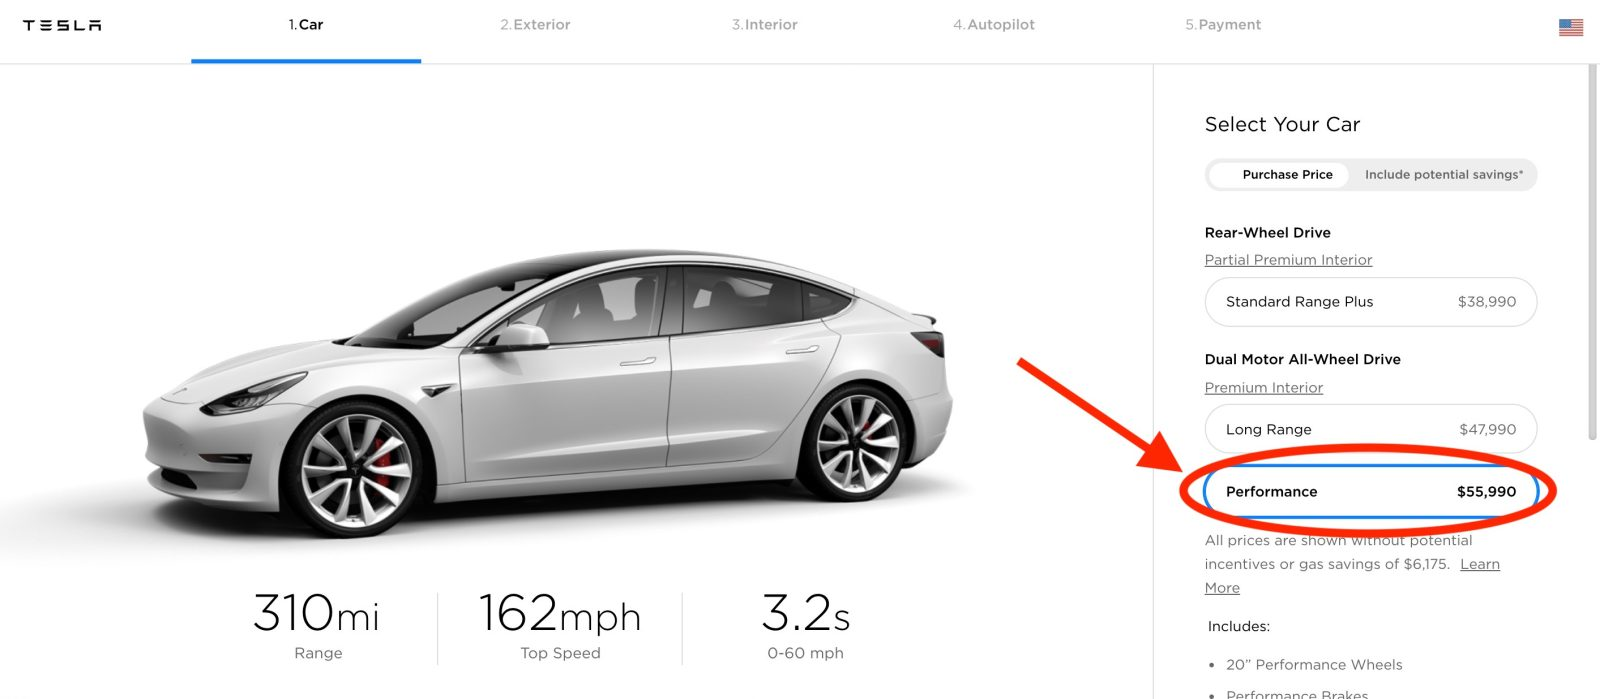 Tesla updates Model Y prices, increases price of Model 3 Performance